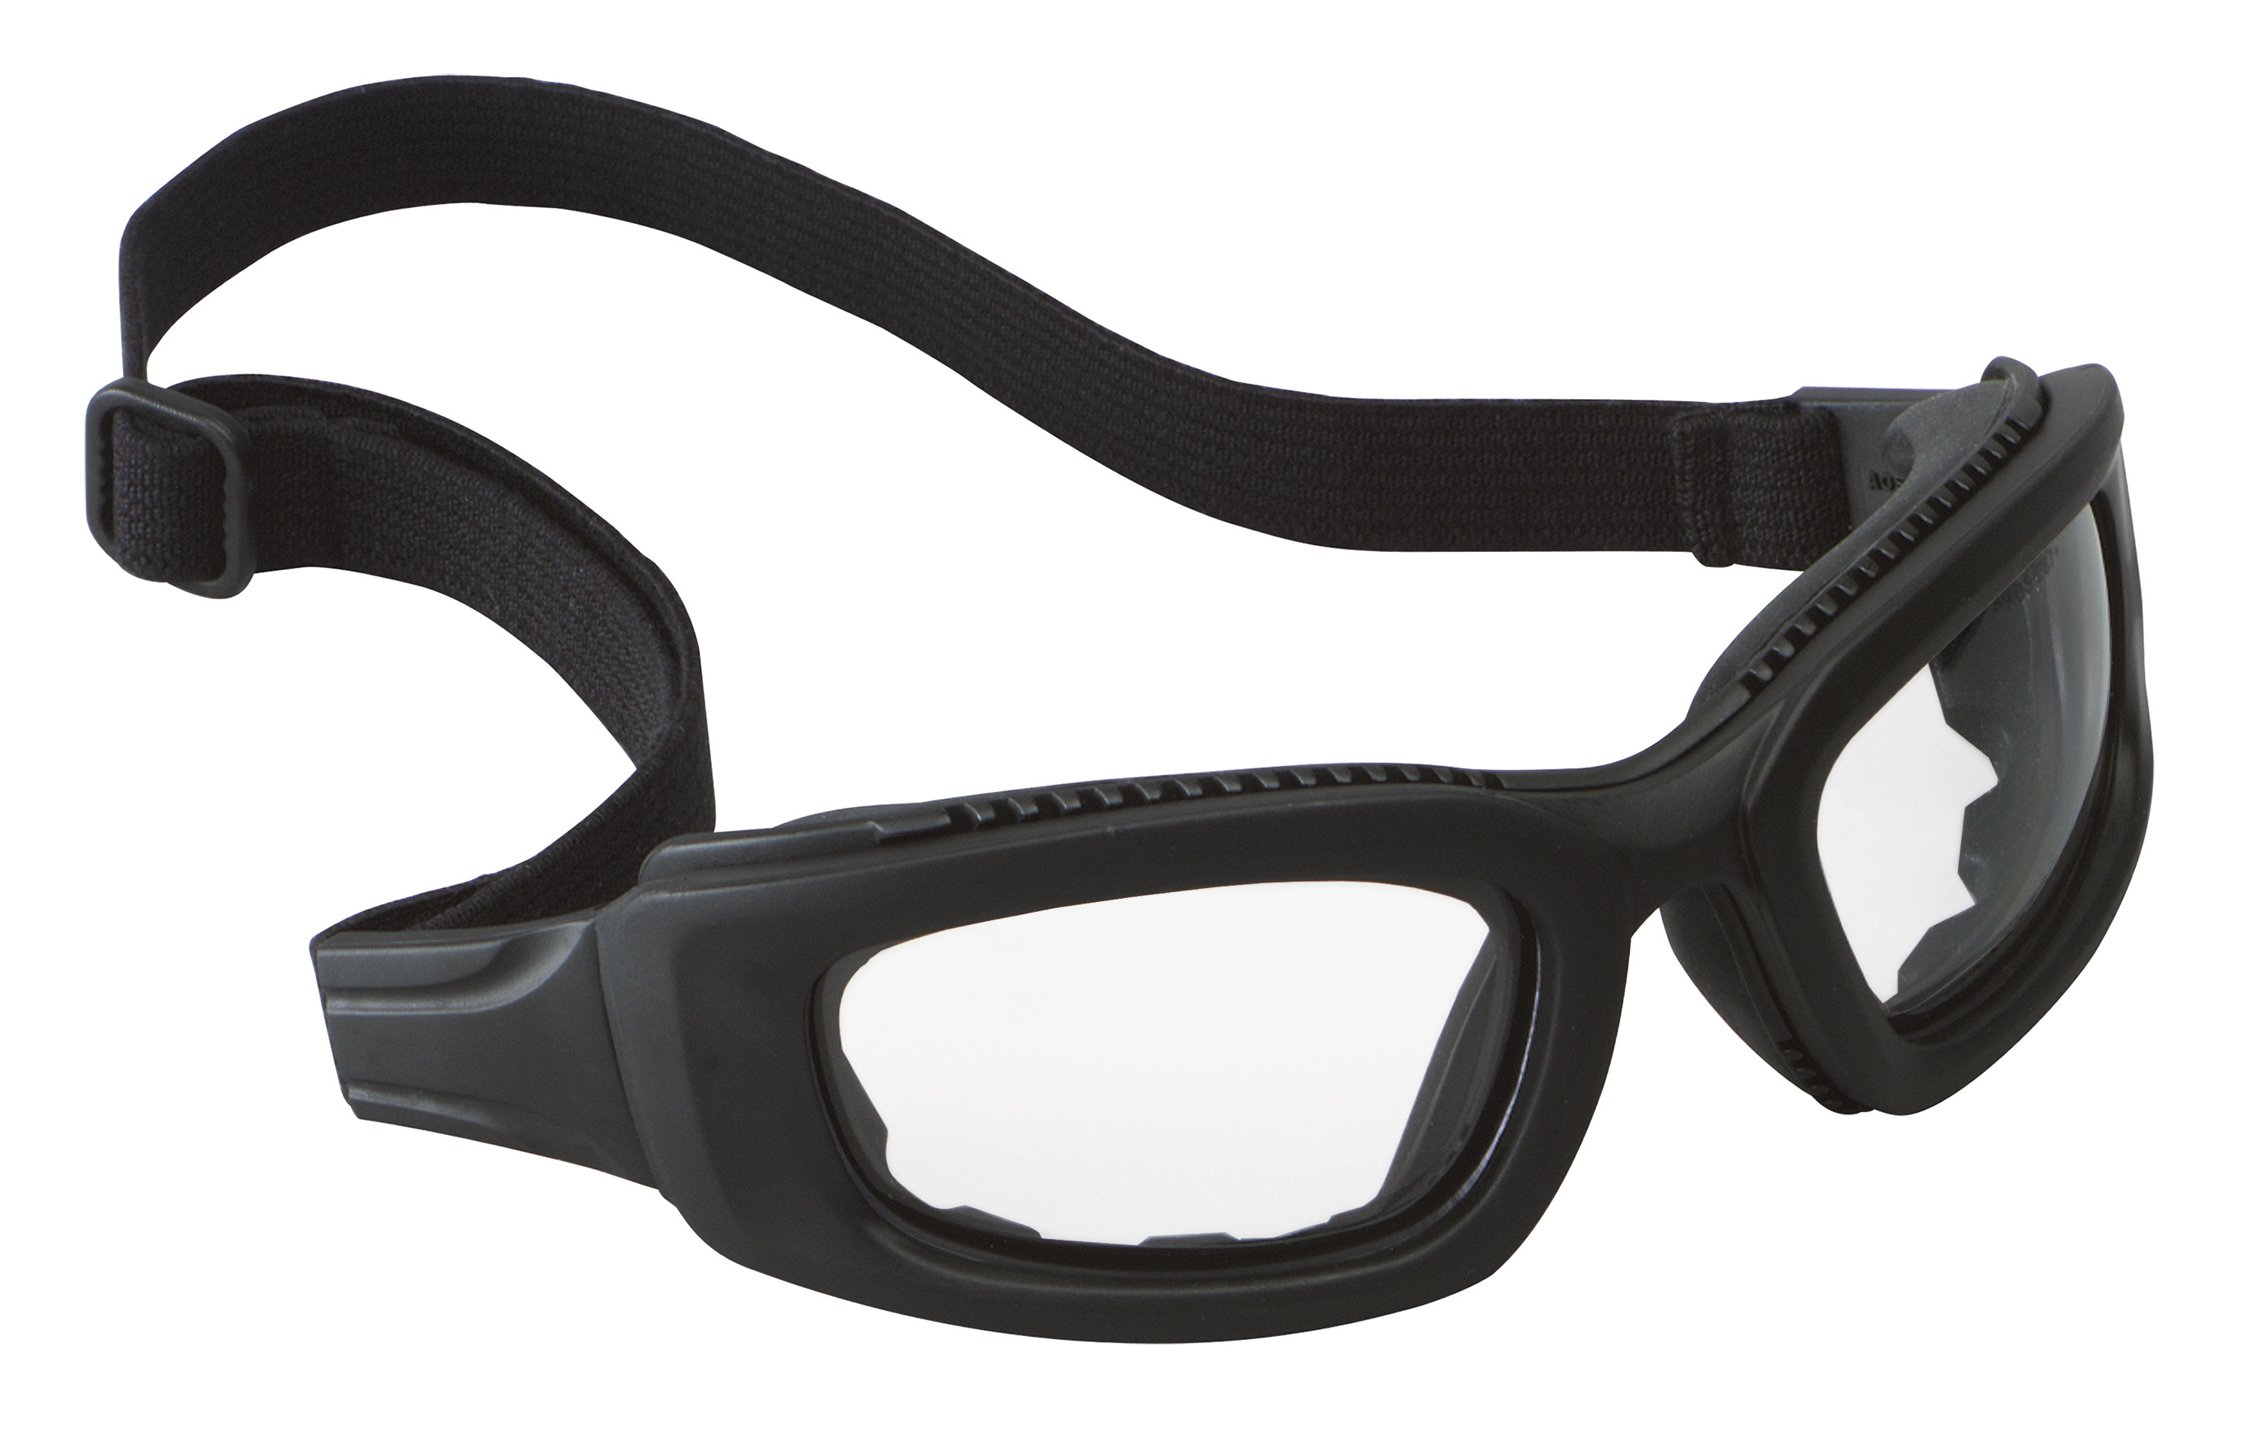 3M Maxim Safety Goggle 2x2, 40686-00000-10 Clear Anti-Fog Lens, Black Frame, Elastic Strap  (Pack of 1) by 3M Personal Protective Equipment